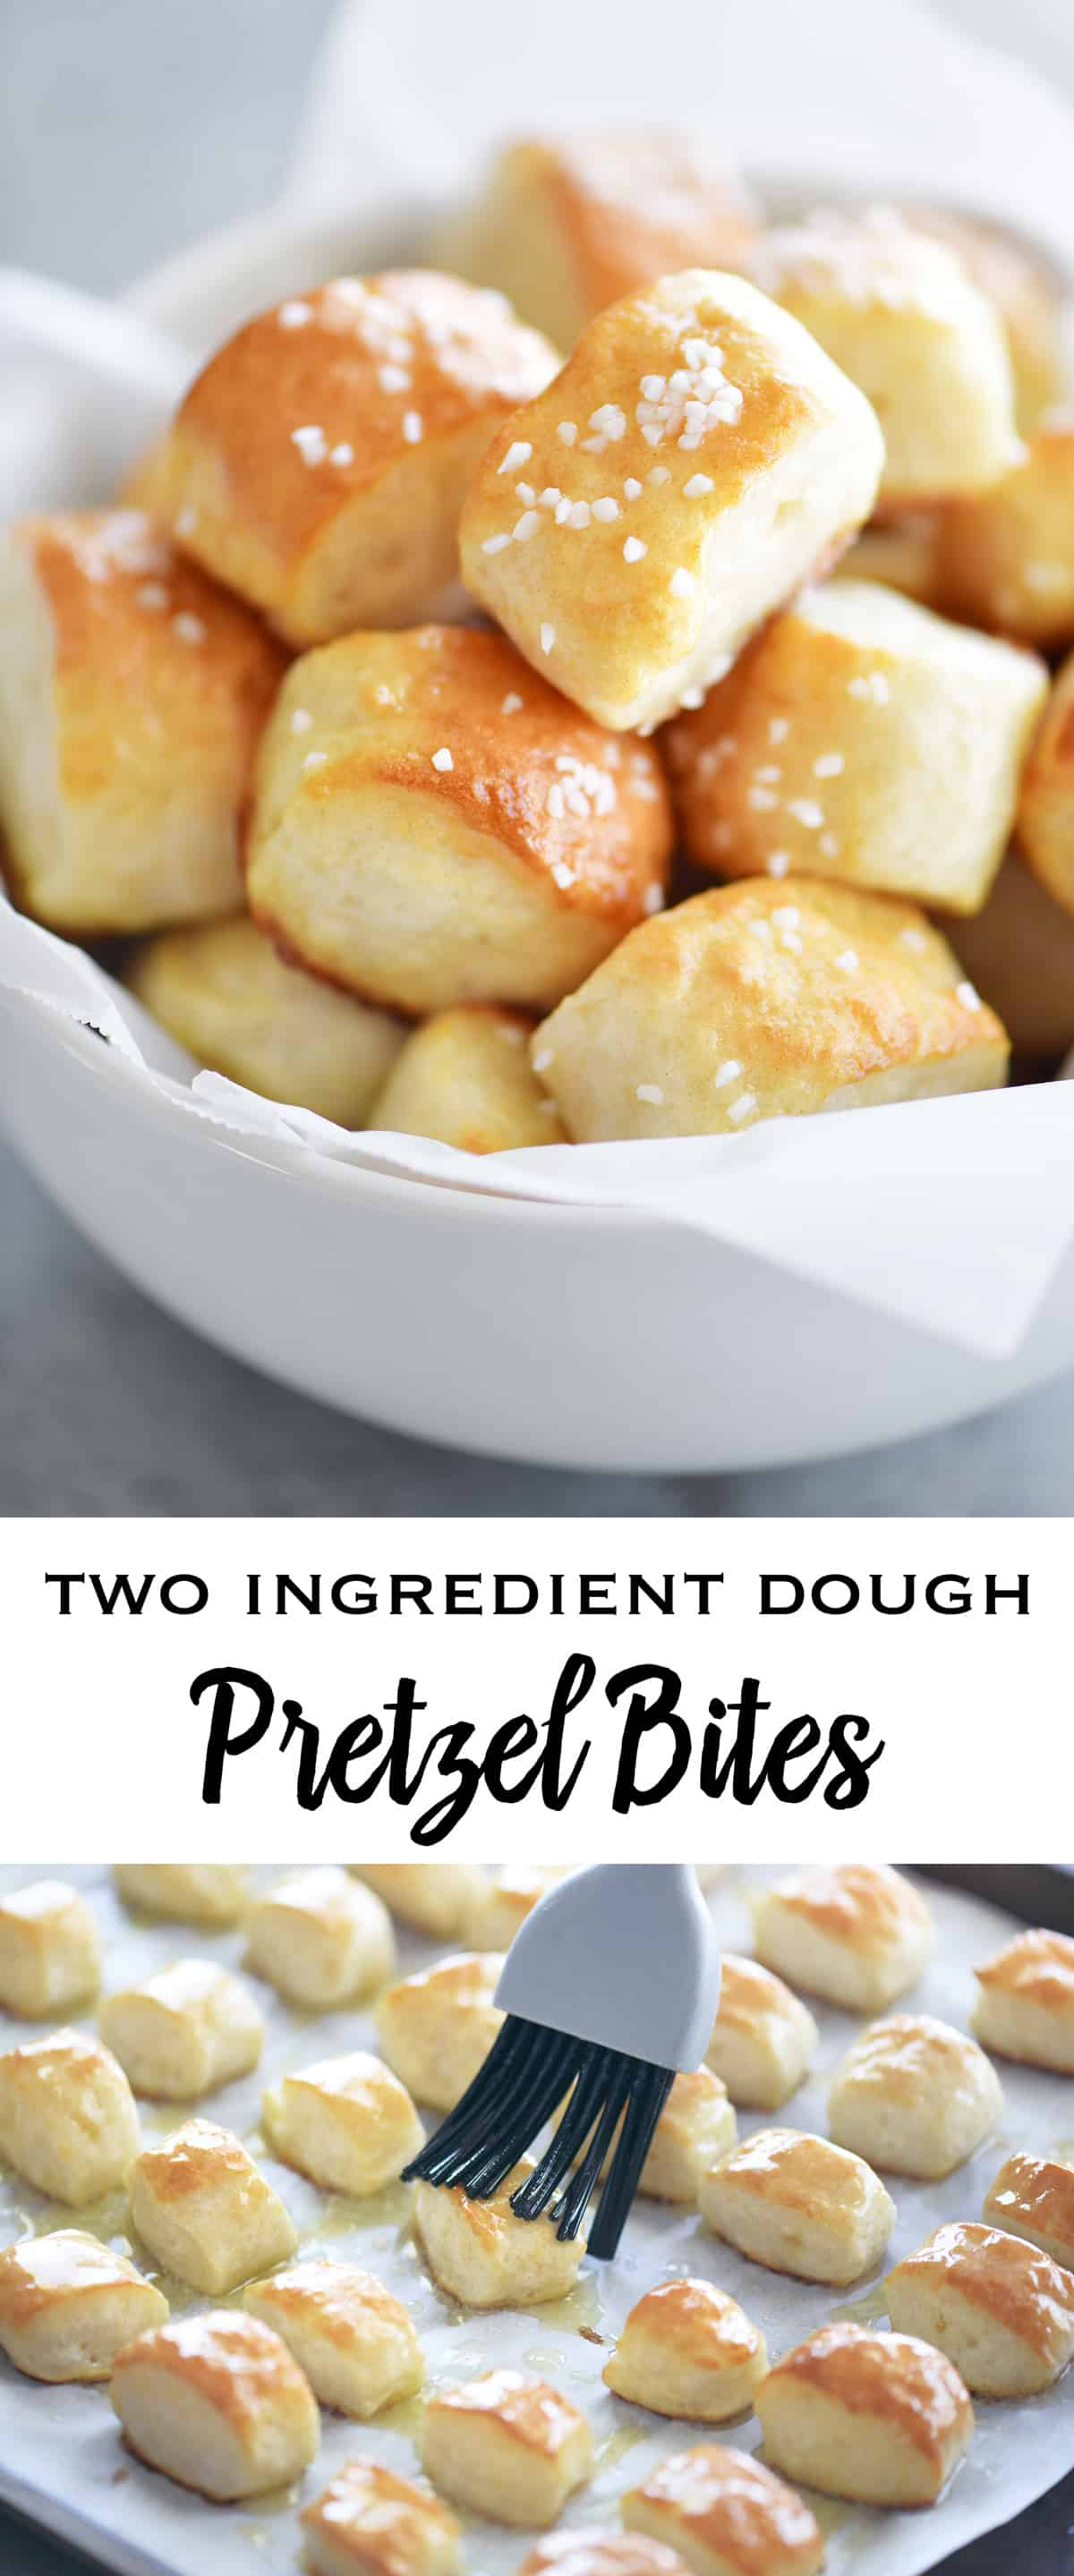 Two Ingredient Dough Pretzel Bites are SUPER EASY to make with no yeast and no waiting for the dough to rise. Just mix the dough, cut nuggets, dip in baking soda water and bake!